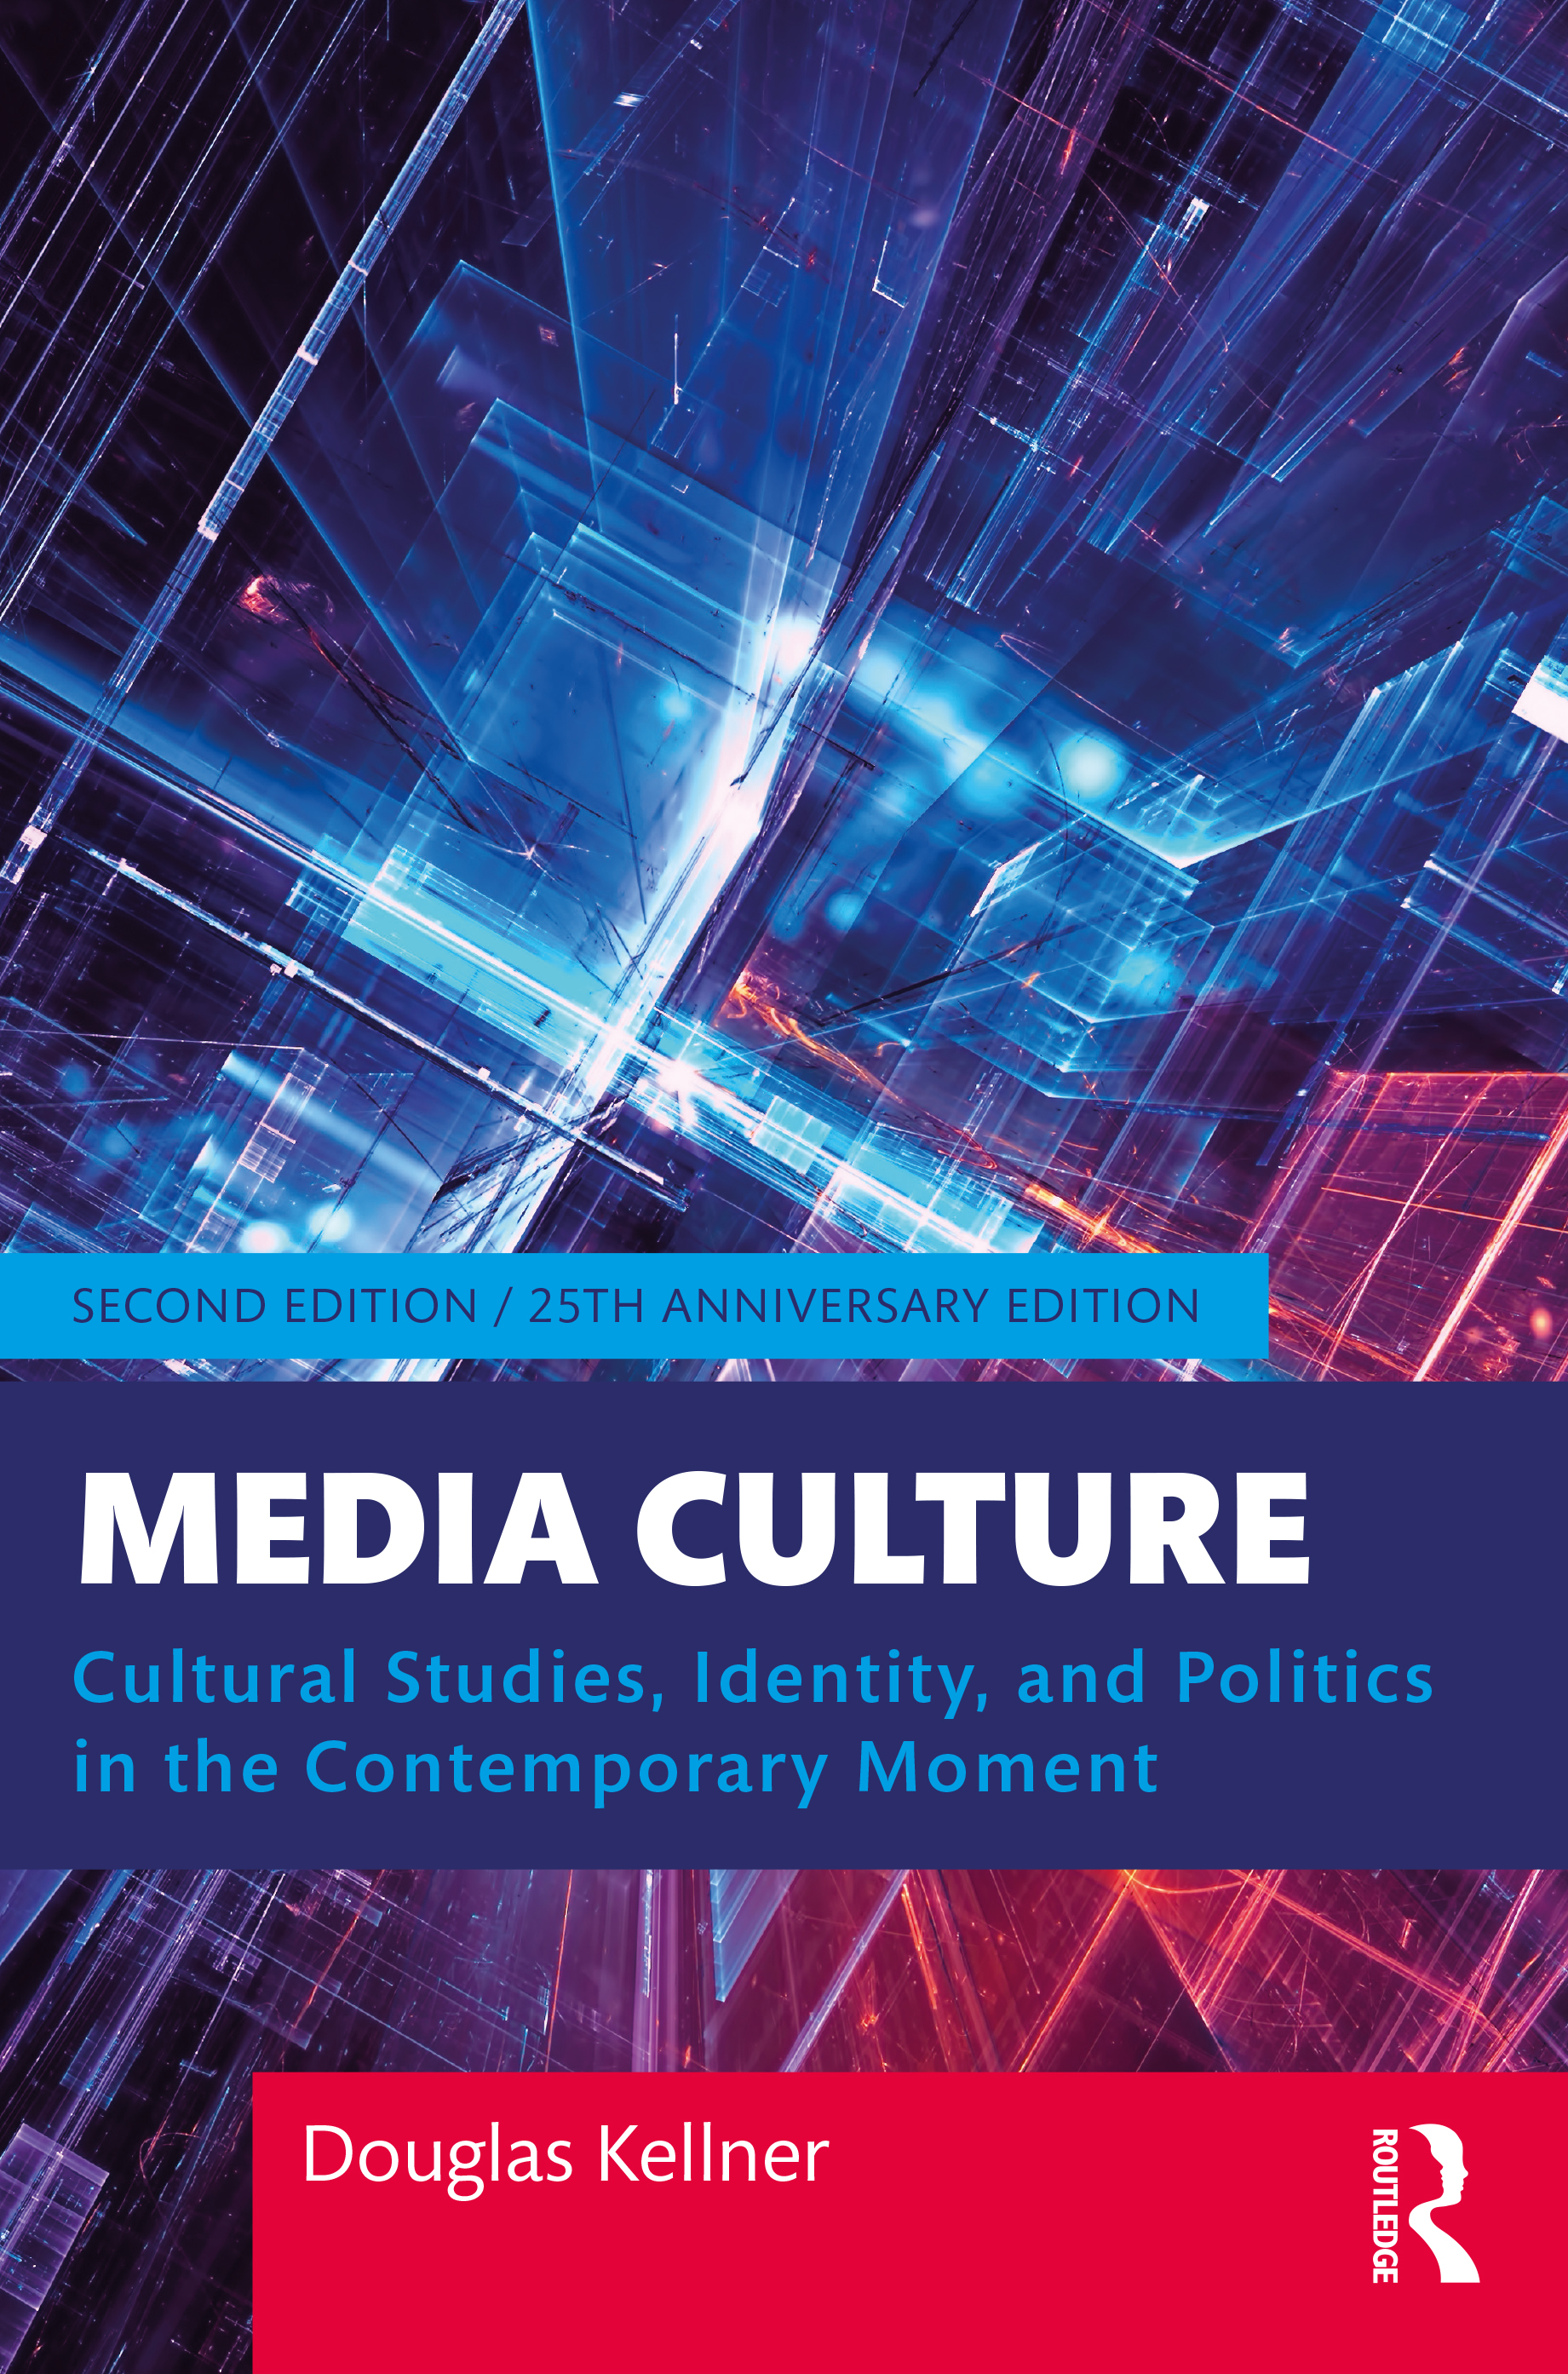 Media Culture: Cultural Studies, Identity, and Politics in the Contemporary Moment book cover